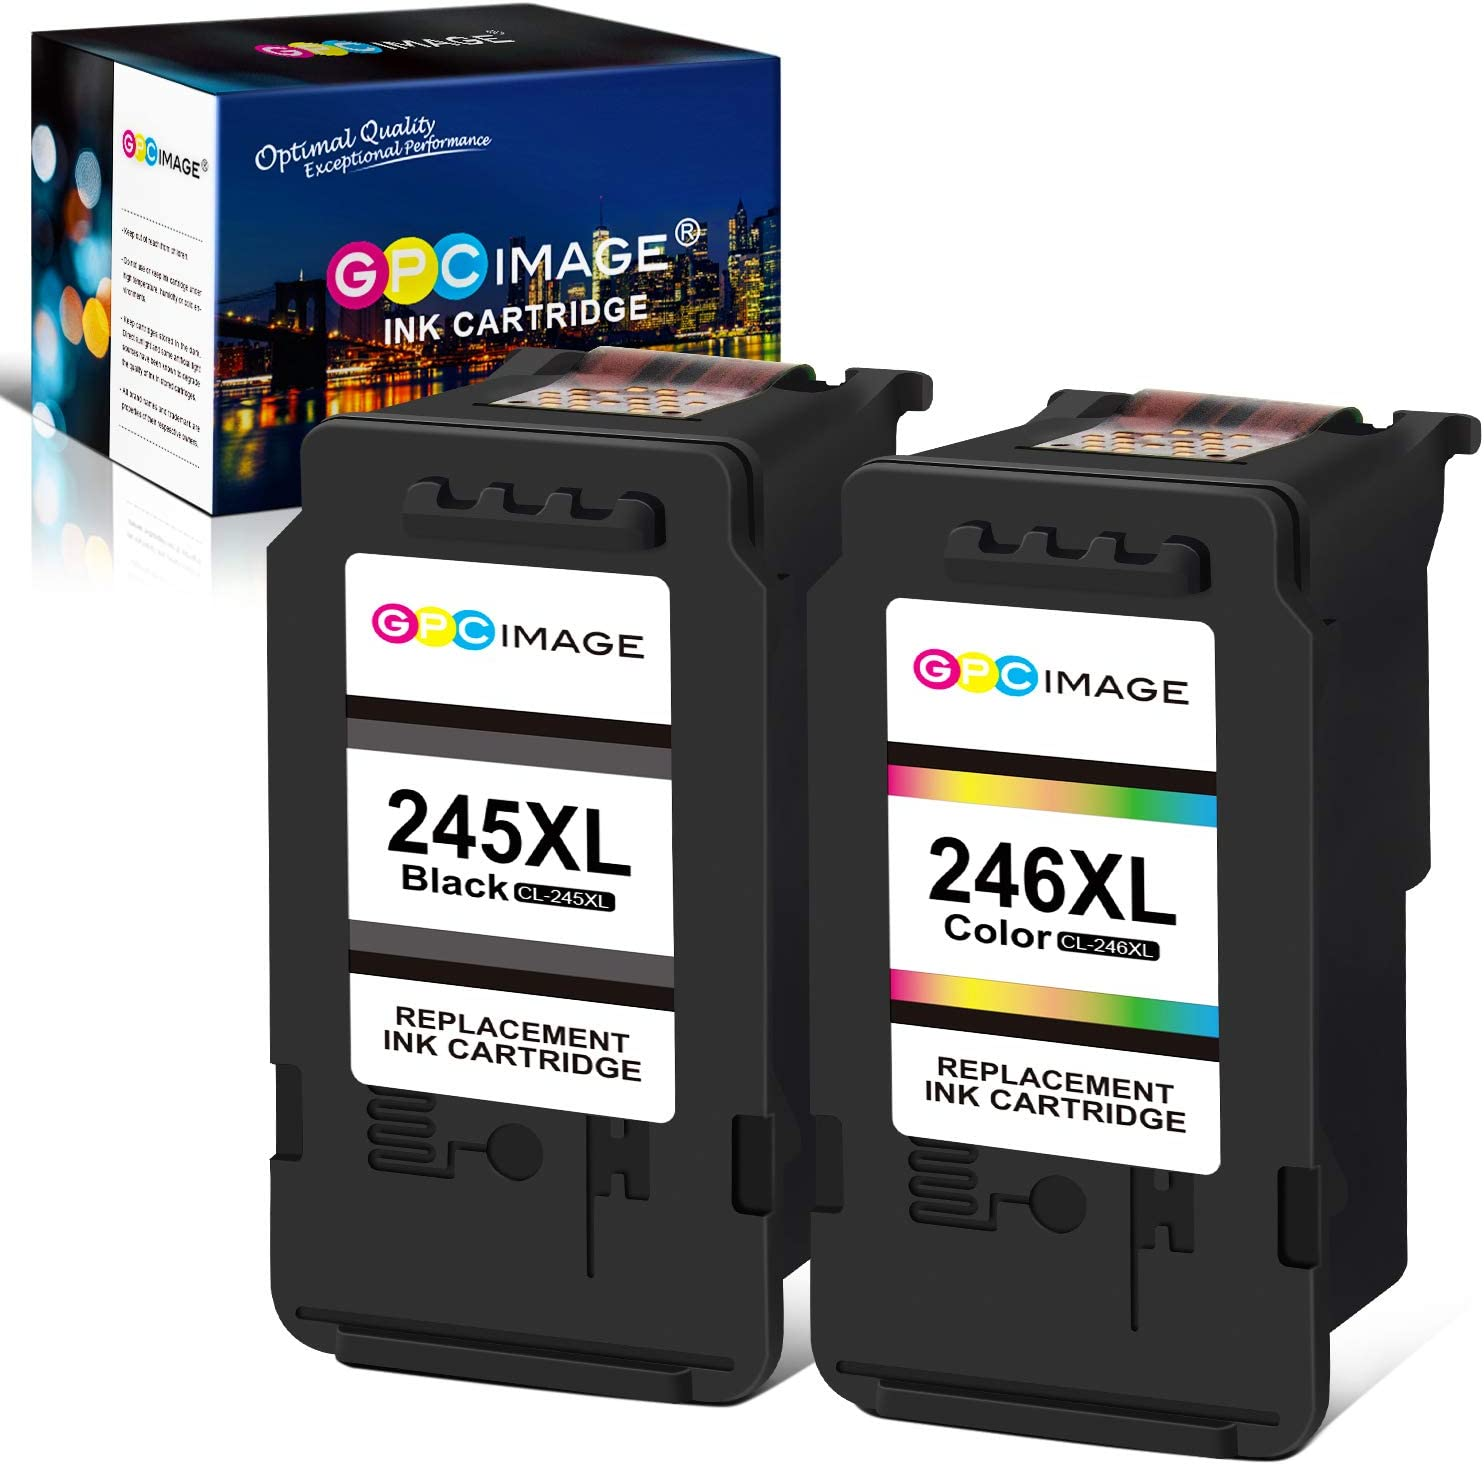 GPC Image Manufactured Ink Cartridge Replacement for Canon PG-245XL CL-246XL PG-243 CL-244 Ink Cartridge 245 and 246 to use with Pixma MX492 MX490 MG2420 MG2522 MG2920 TS3320 (1 Black,1 Tri-Color)